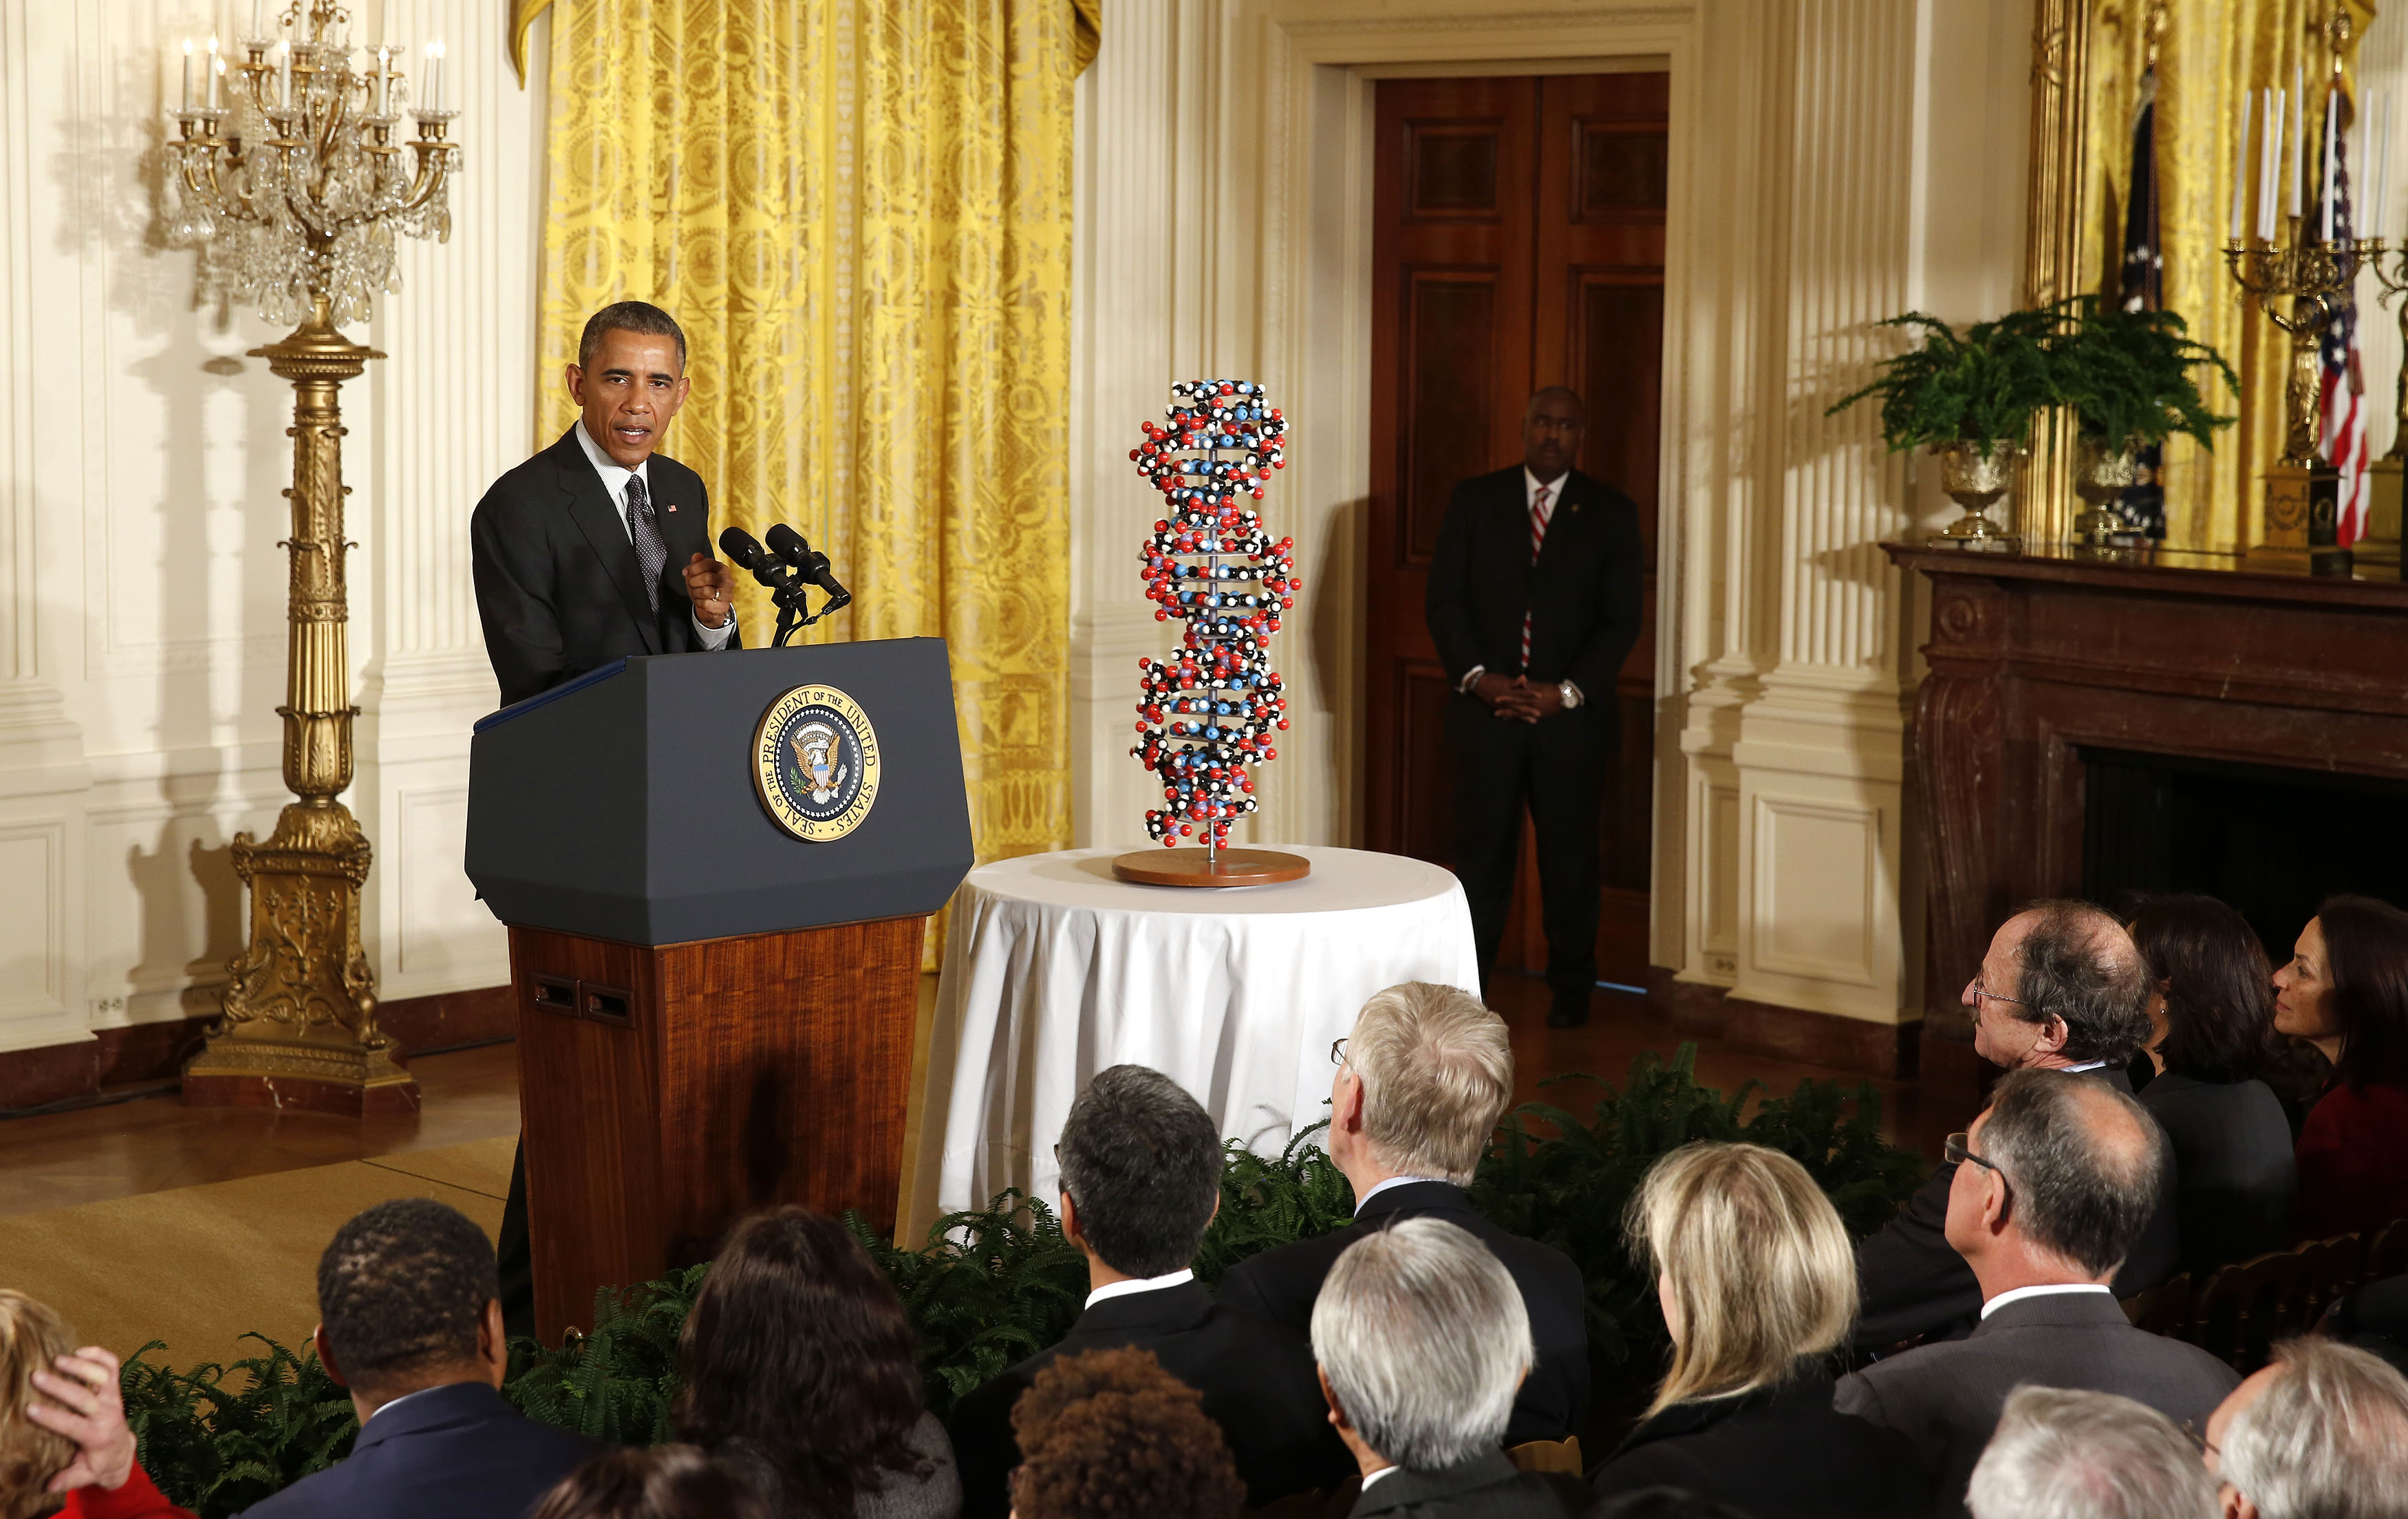 Obama talks about investments to improve health and treat disease through precision medicine while in the East Room of the White House in Washington